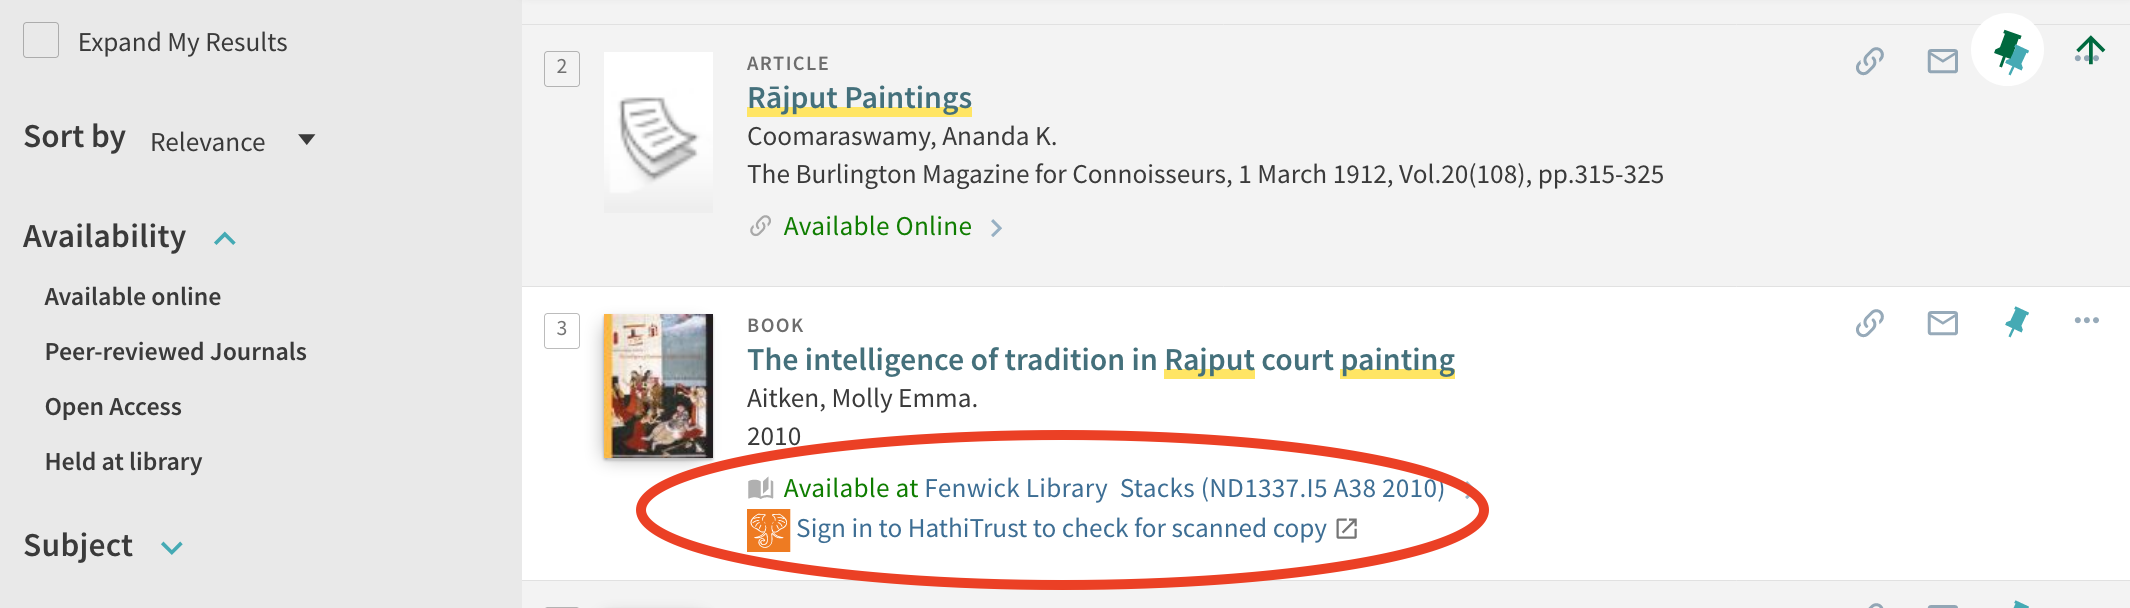 """Screenshot of Mason Libraries catalog search for the book """"Intelligence of Rajput Paintings,"""" showing the location of the """"hathiTrust Emergency Access"""" link."""